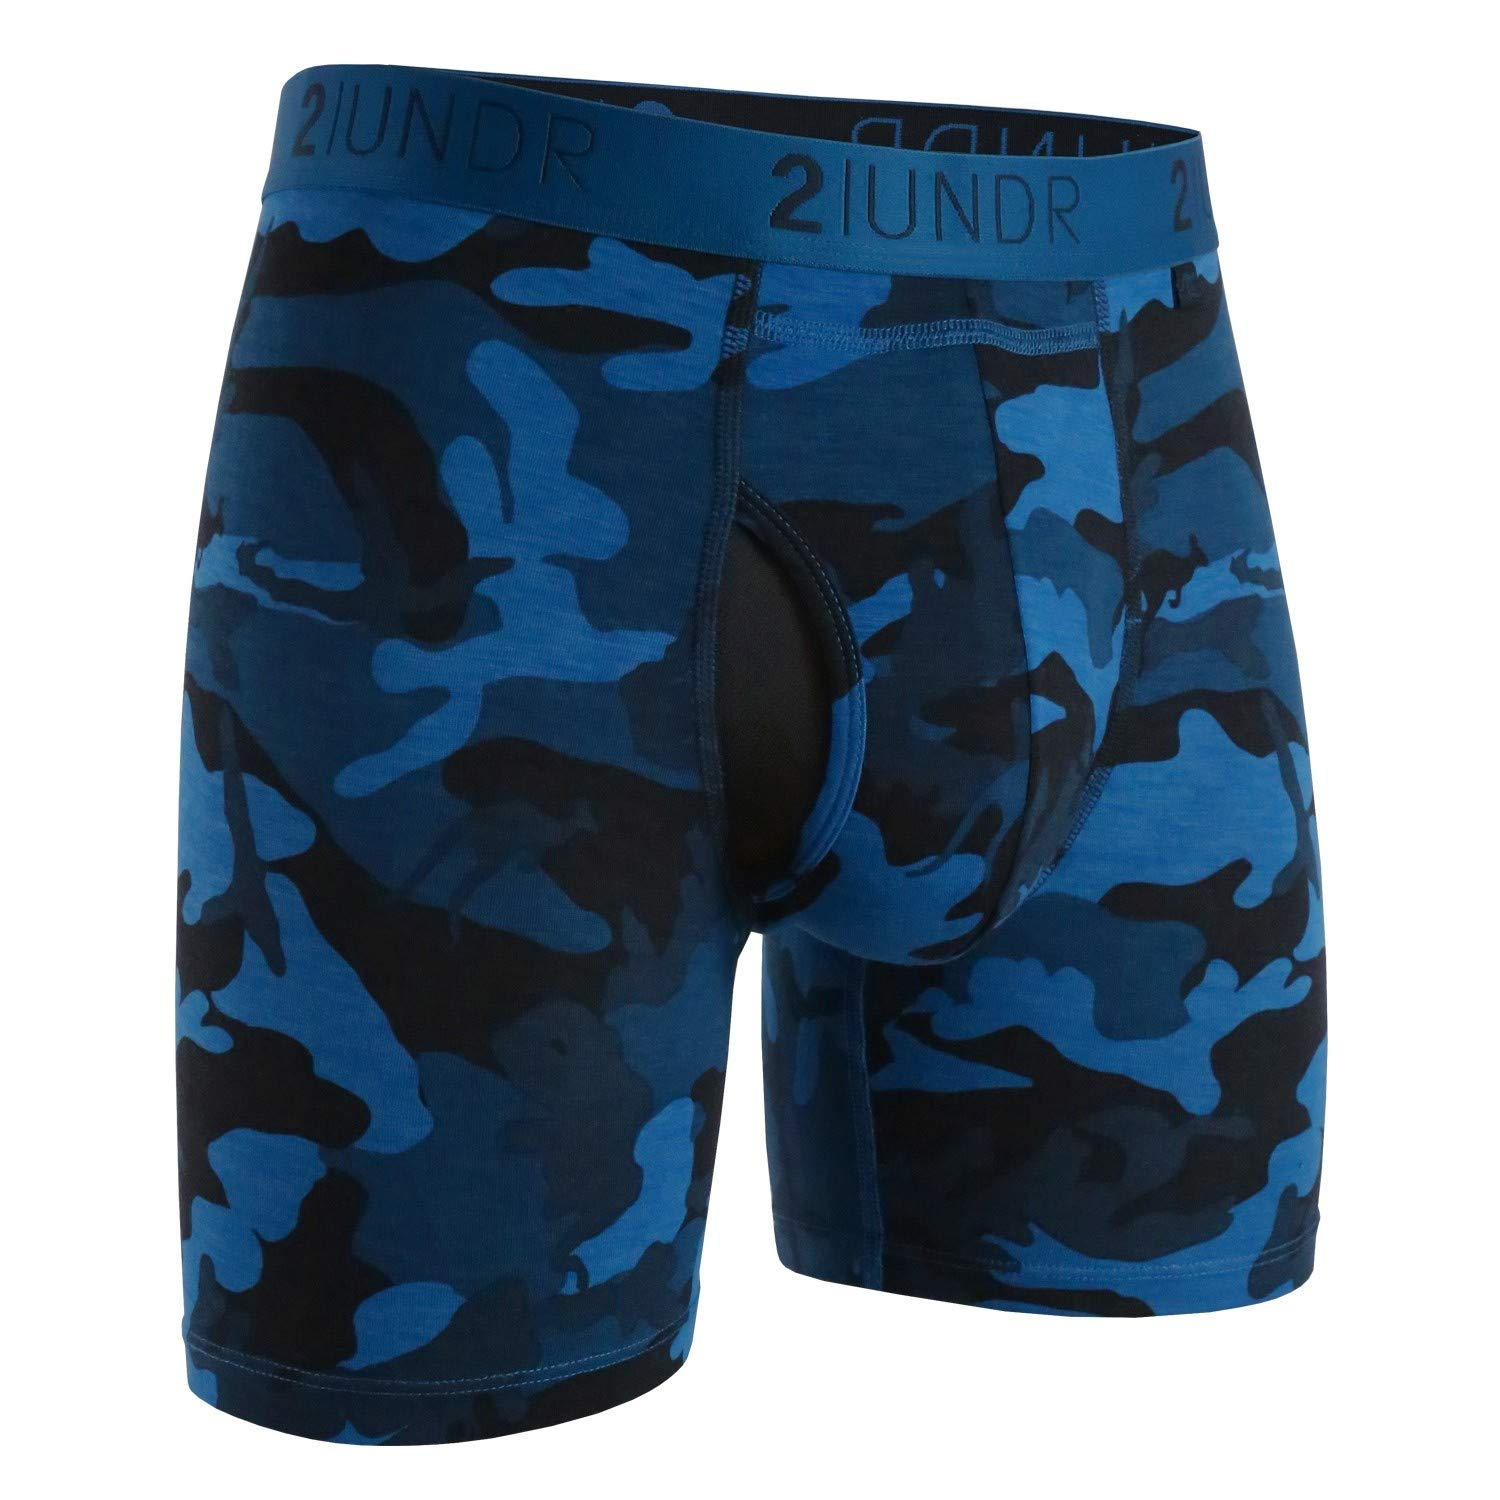 """2UNDR Swing Shift 6/"""" Boxer Brief-2Pack"""